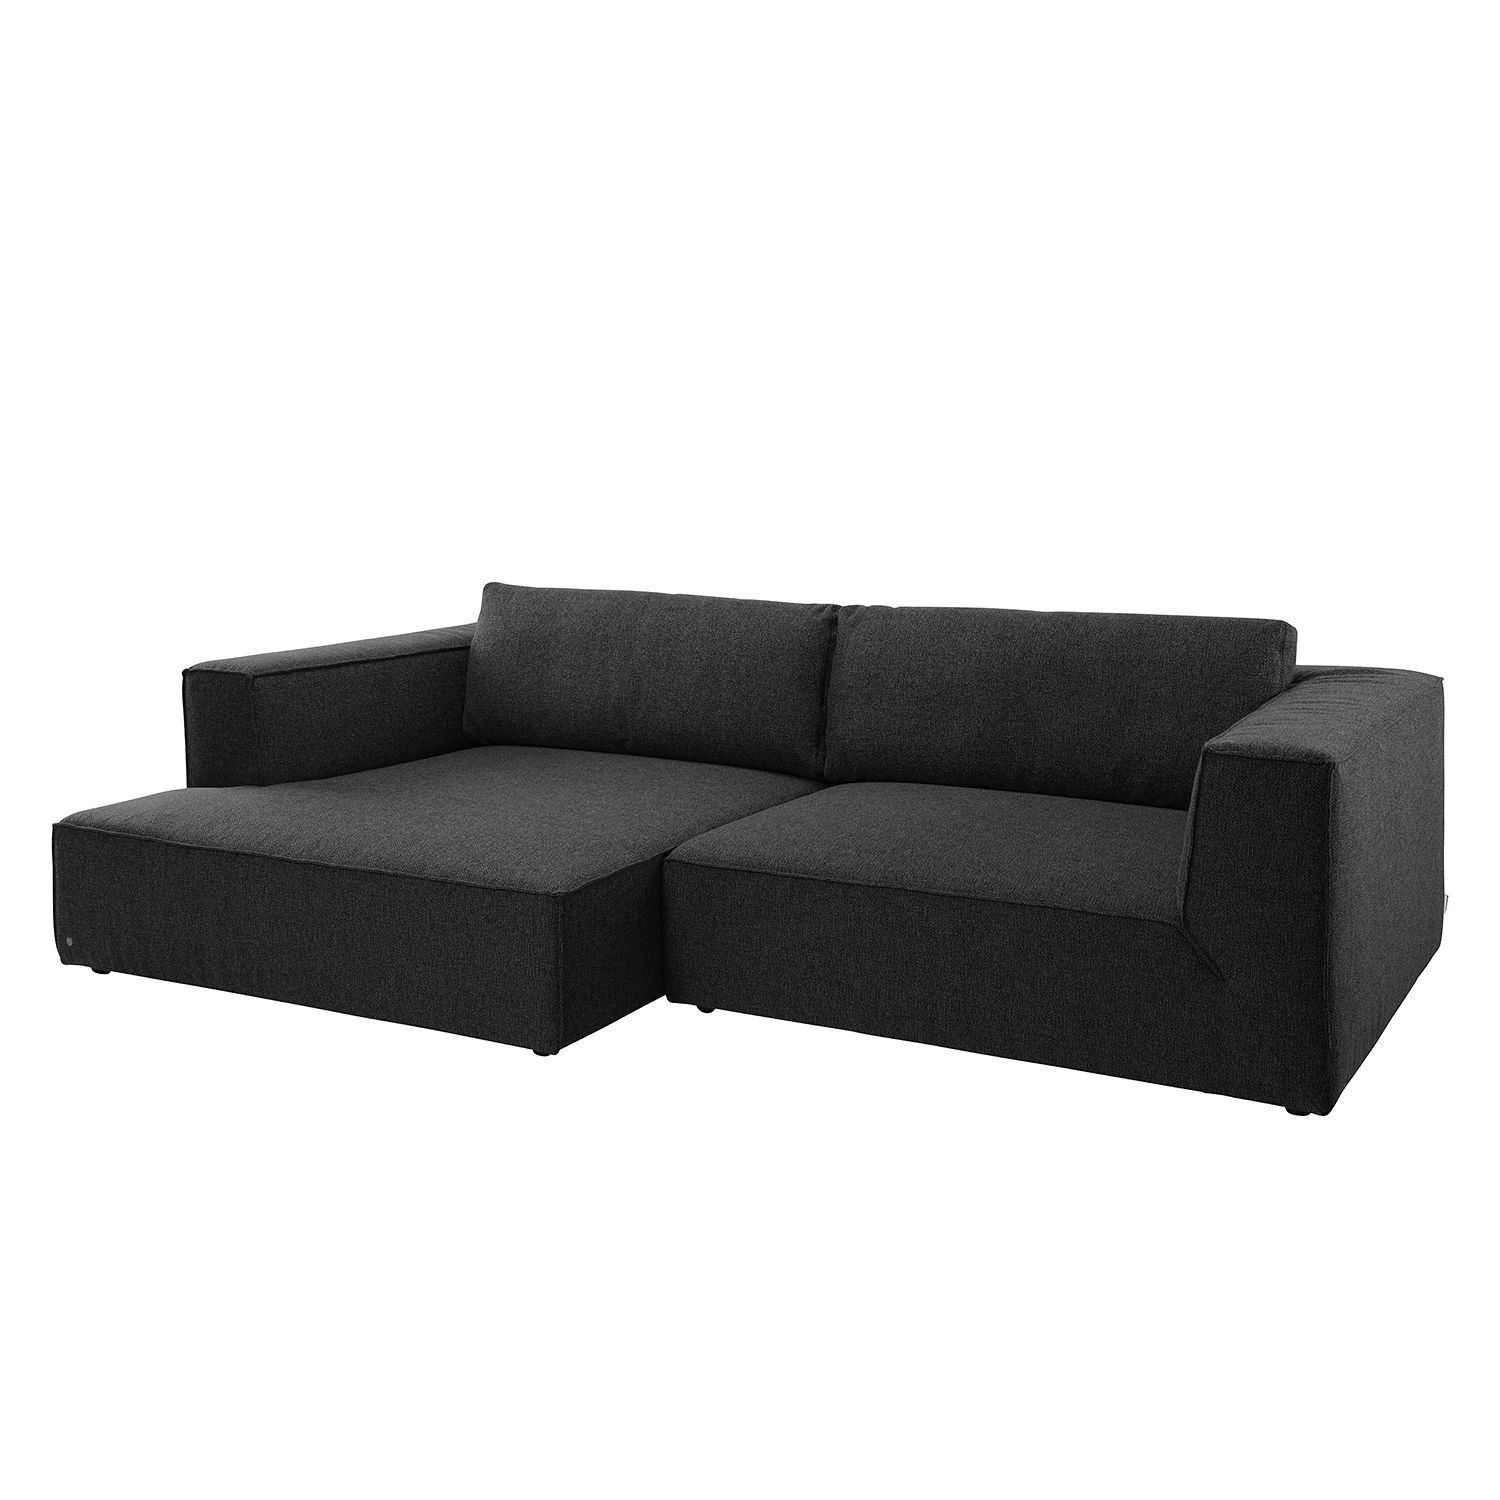 Ecksofa Big Cube Style Webstoff - Longchair davorstehend links - Stoff TBO9 anthrazite, Tom Tailor